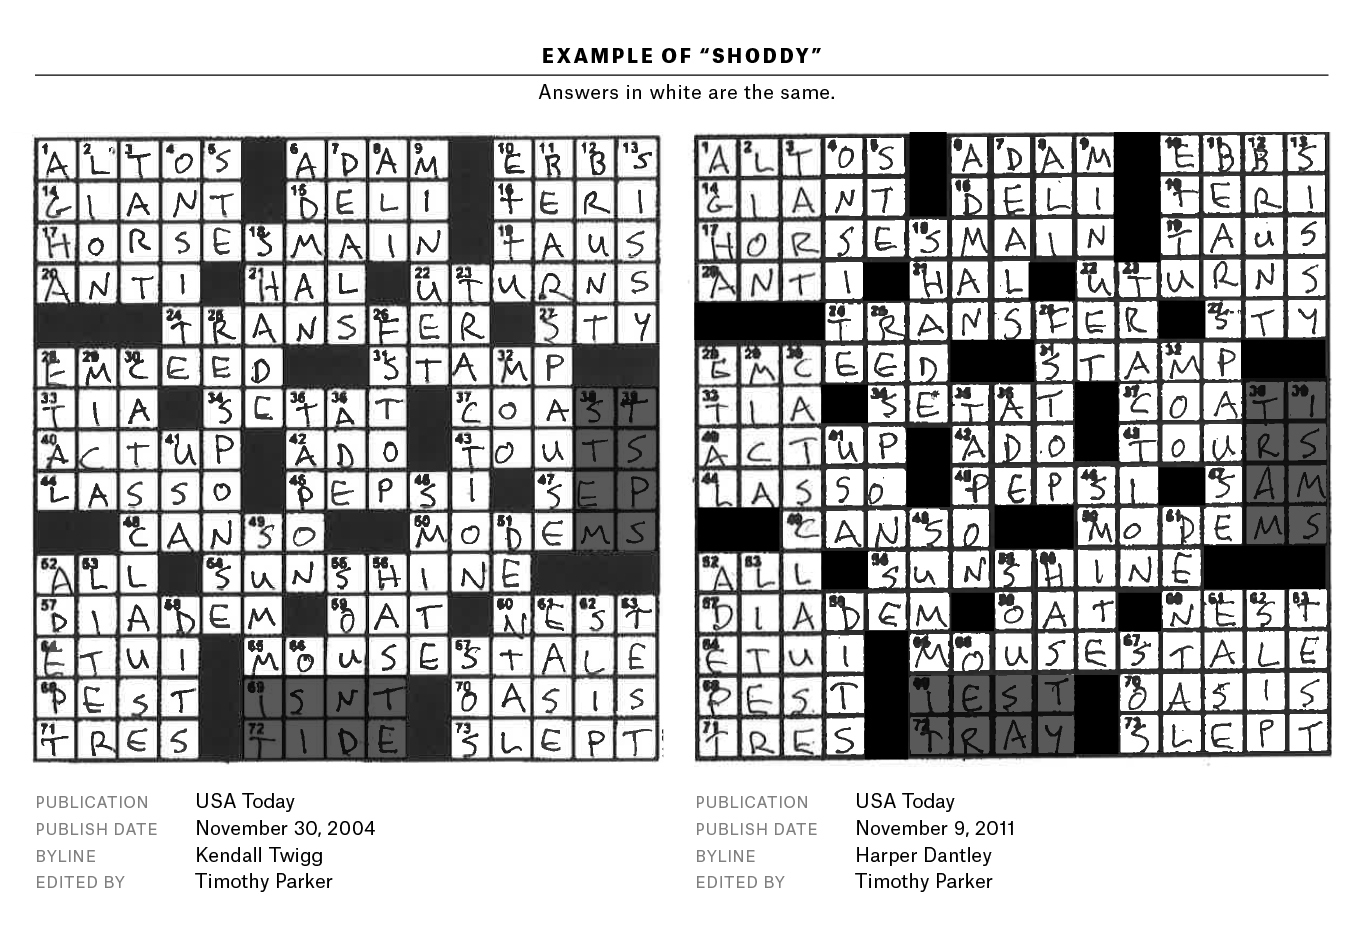 A Plagiarism Scandal Is Unfolding In The Crossword World - Printable Crossword Puzzles Globe And Mail